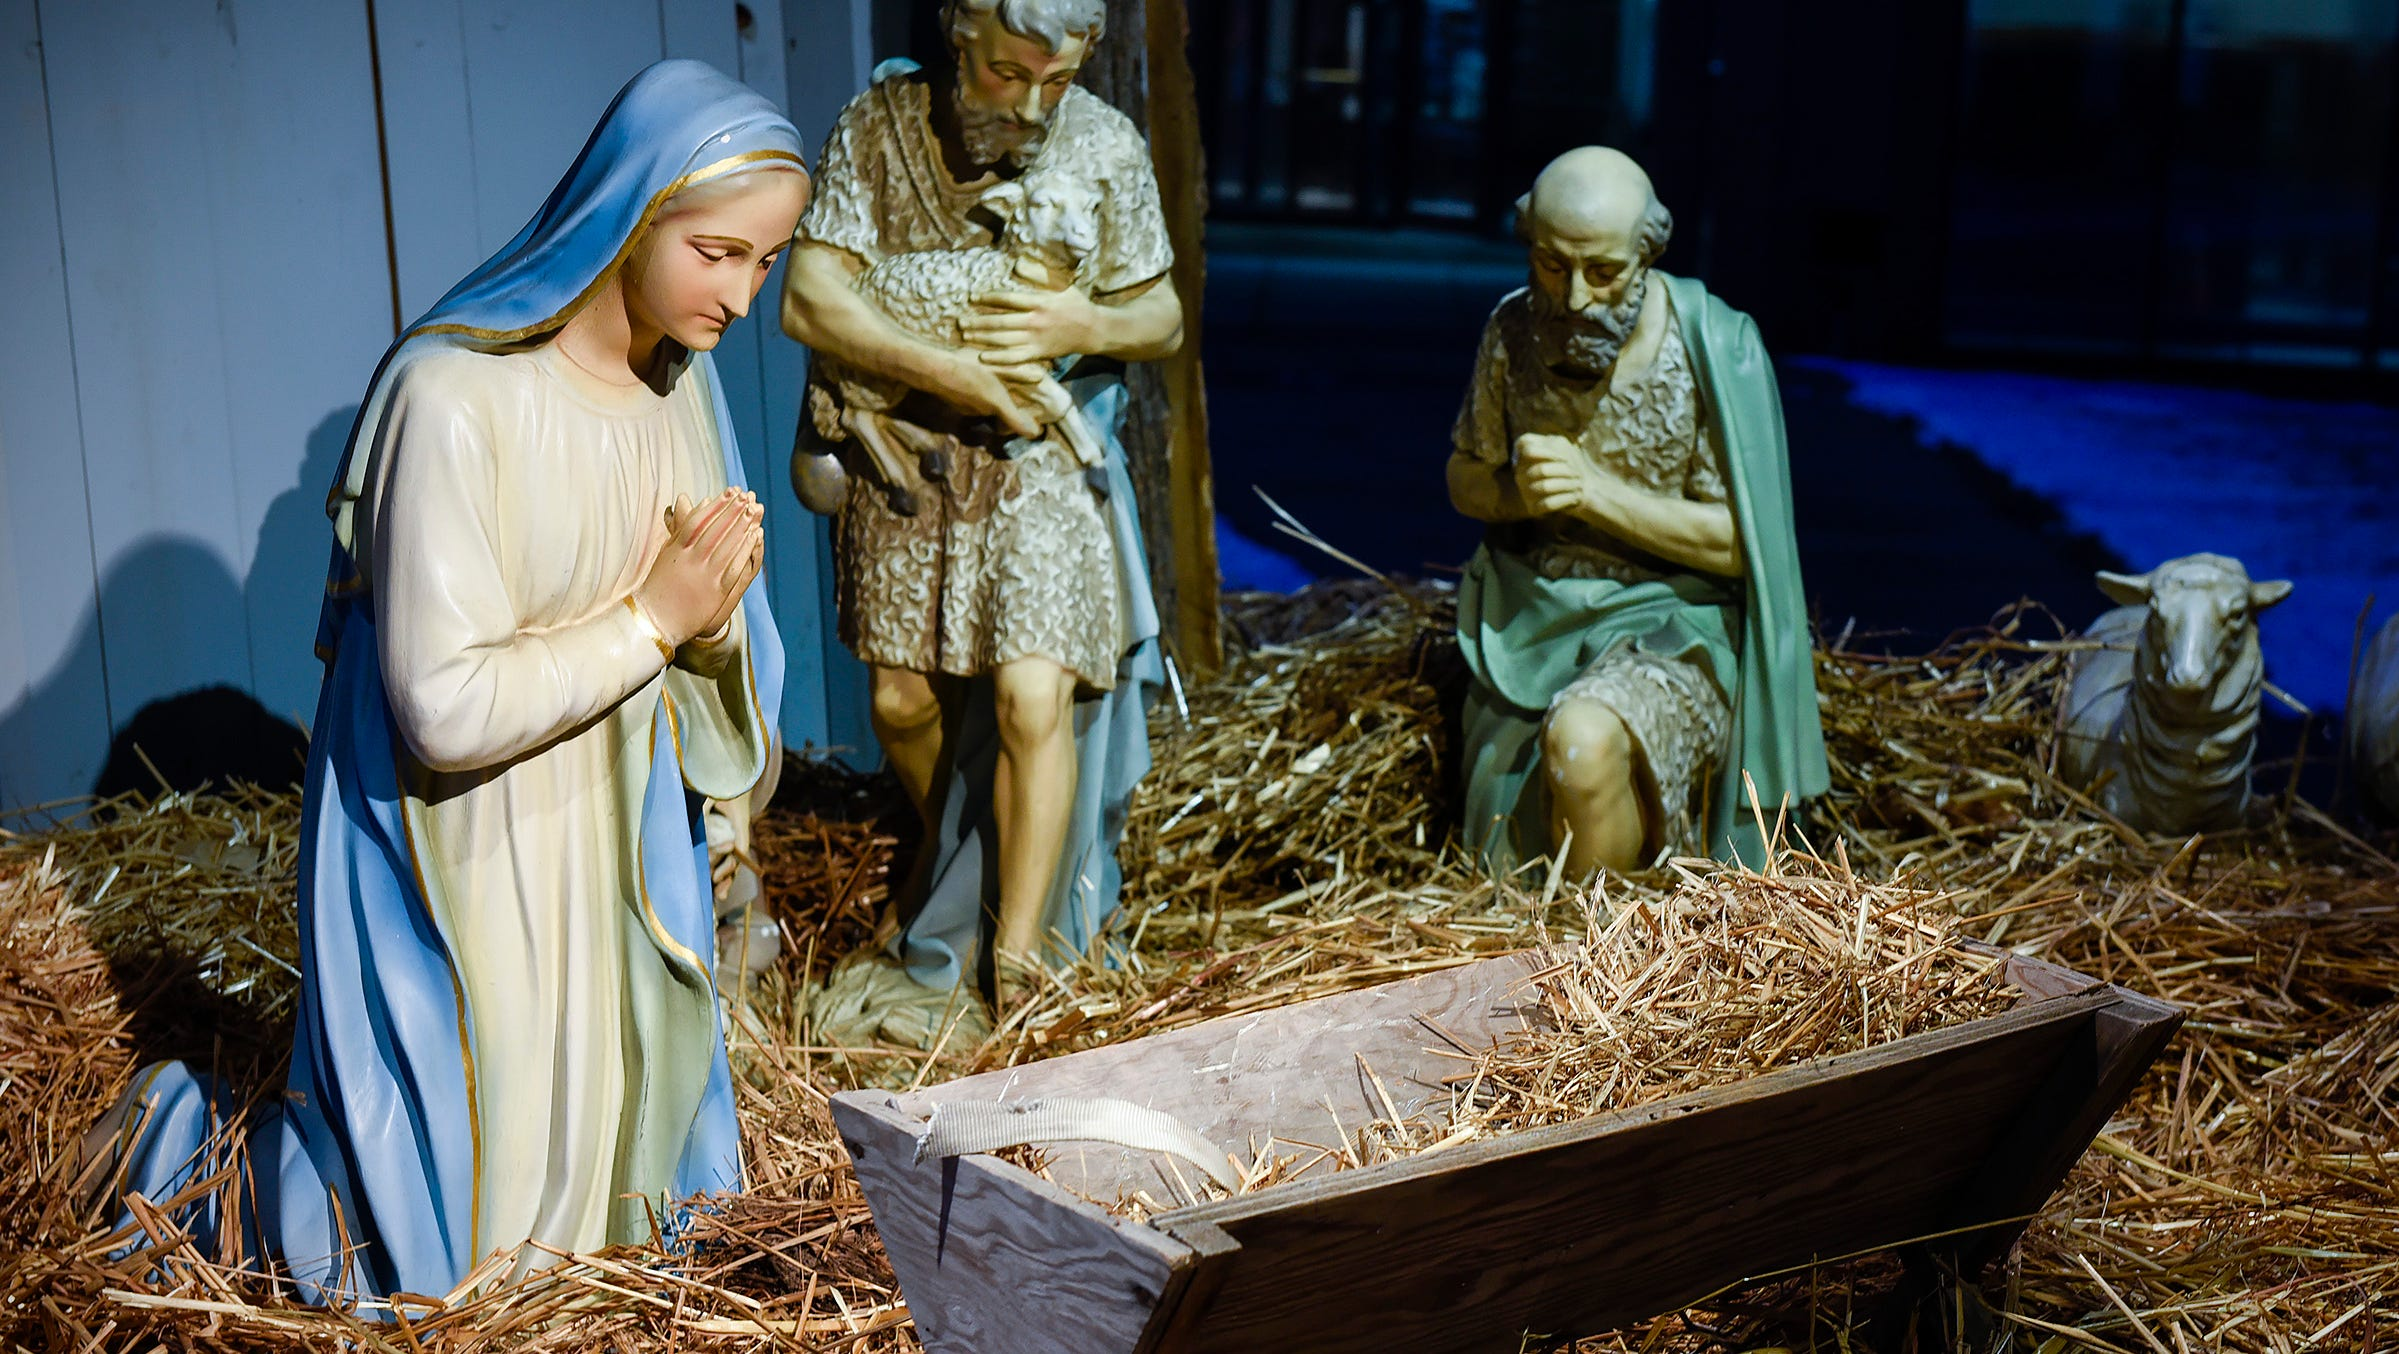 The baby Jesus figure is missing from the antique nativity scene at the U.S. Bank shown Thursday, Dec. 13, in St. Cloud.